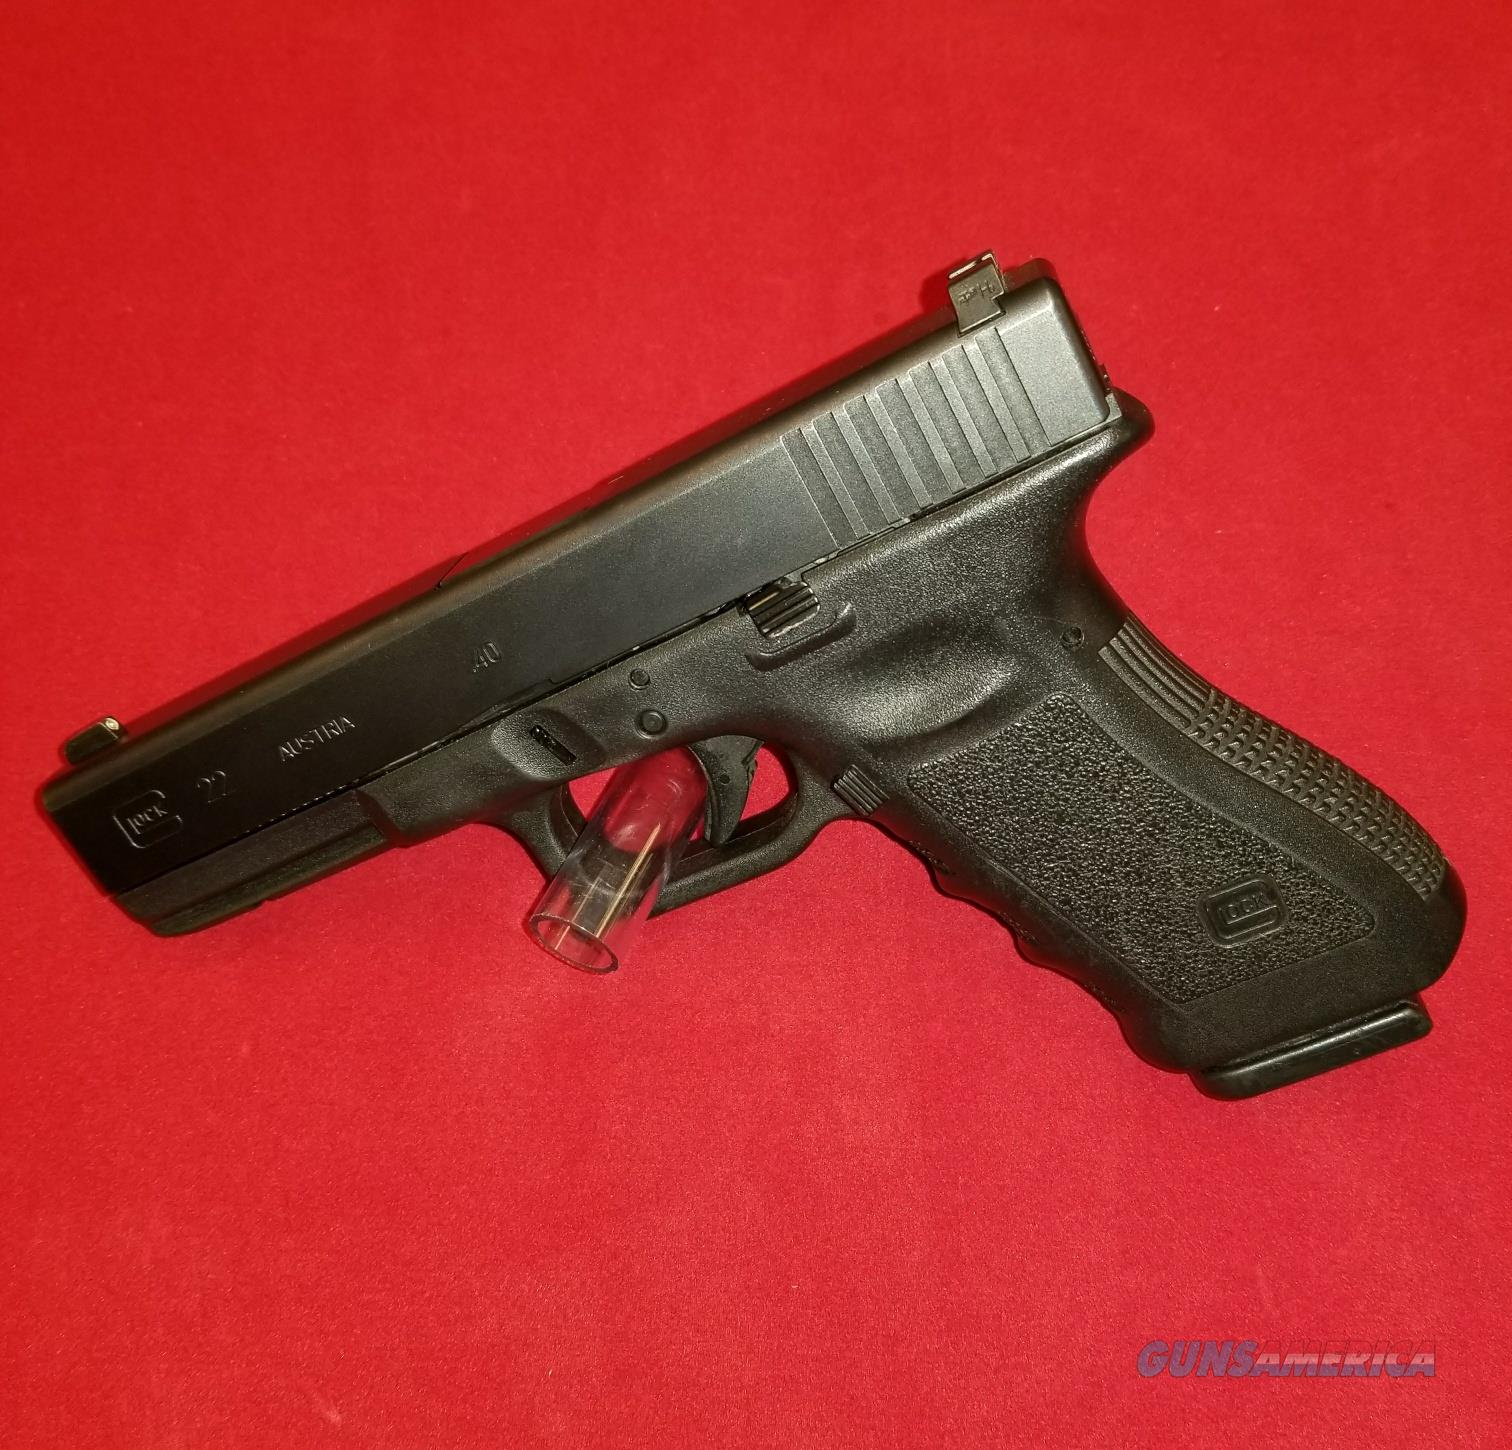 GLOCK 22 LAW ENFORCEMENT TRADE-IN 22 40SW GEN3 1 15RD USED G22 GEN3  Guns > Pistols > Glock Pistols > 22